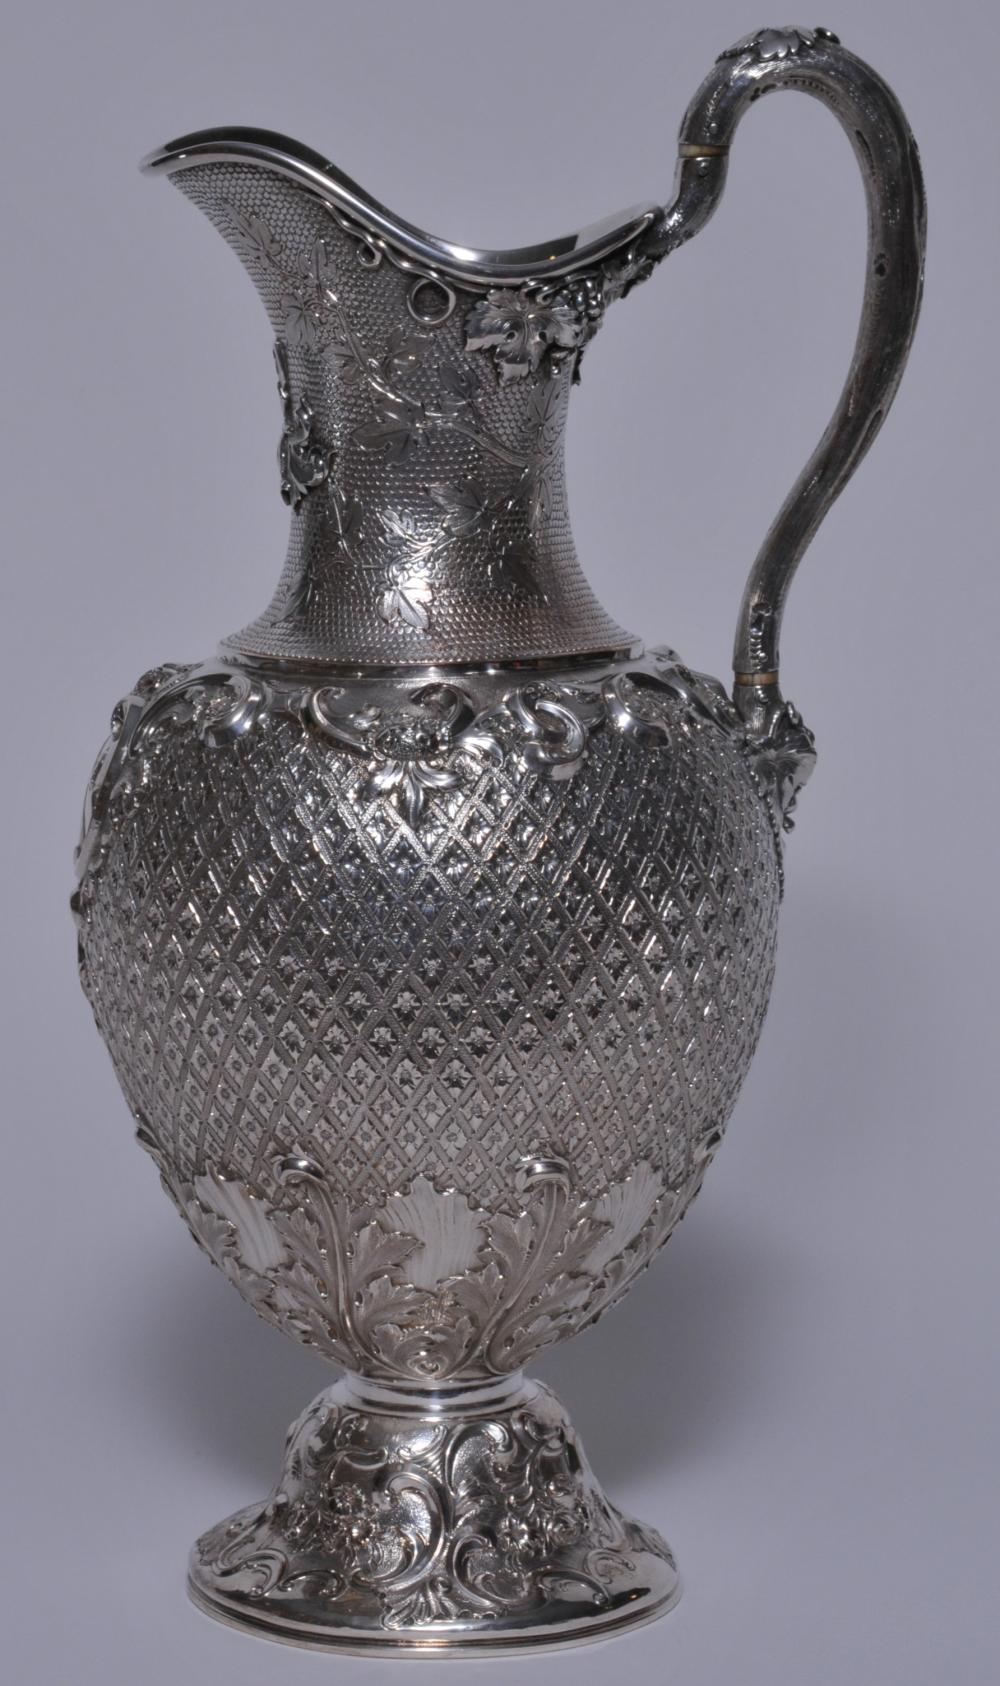 Ornate Scottish Victorian sterling silver ewer. Allover ornate decoration of diamond quilted and stippled ground with relief floral and scroll decoration on body and base. Top with relief grape vine decoration. Large acanthus leaf decoration on lower